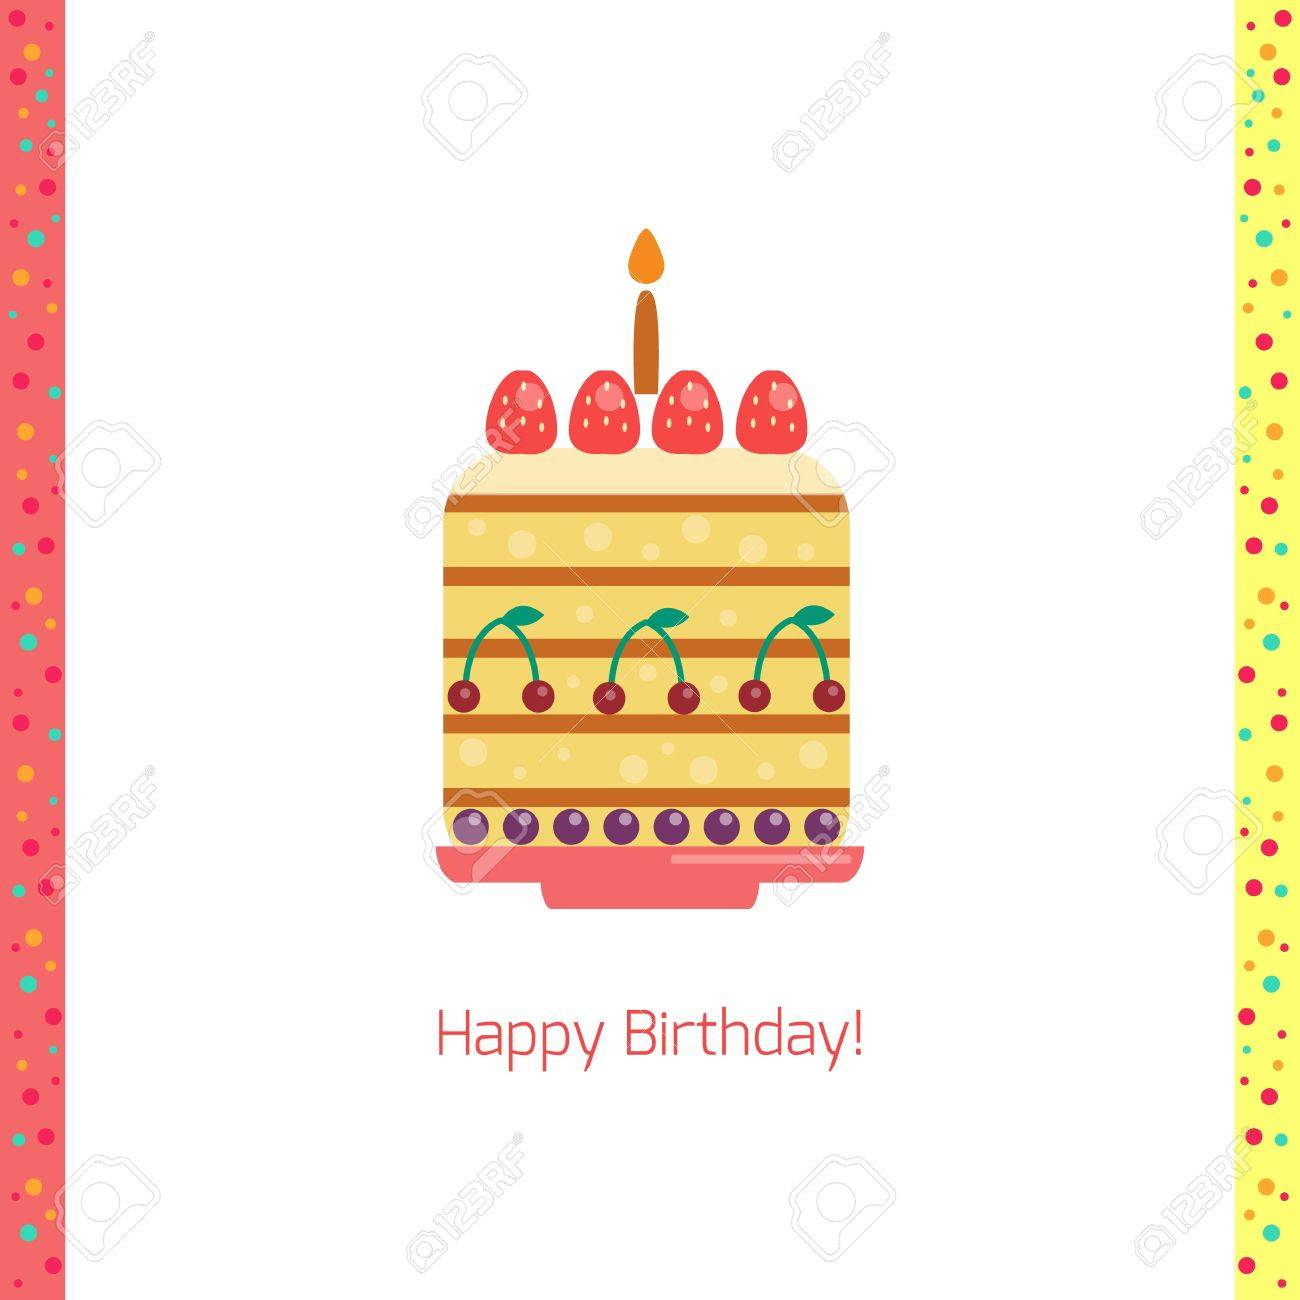 Birthday Cake Flat Icon Isolated White Background Happy Birthday